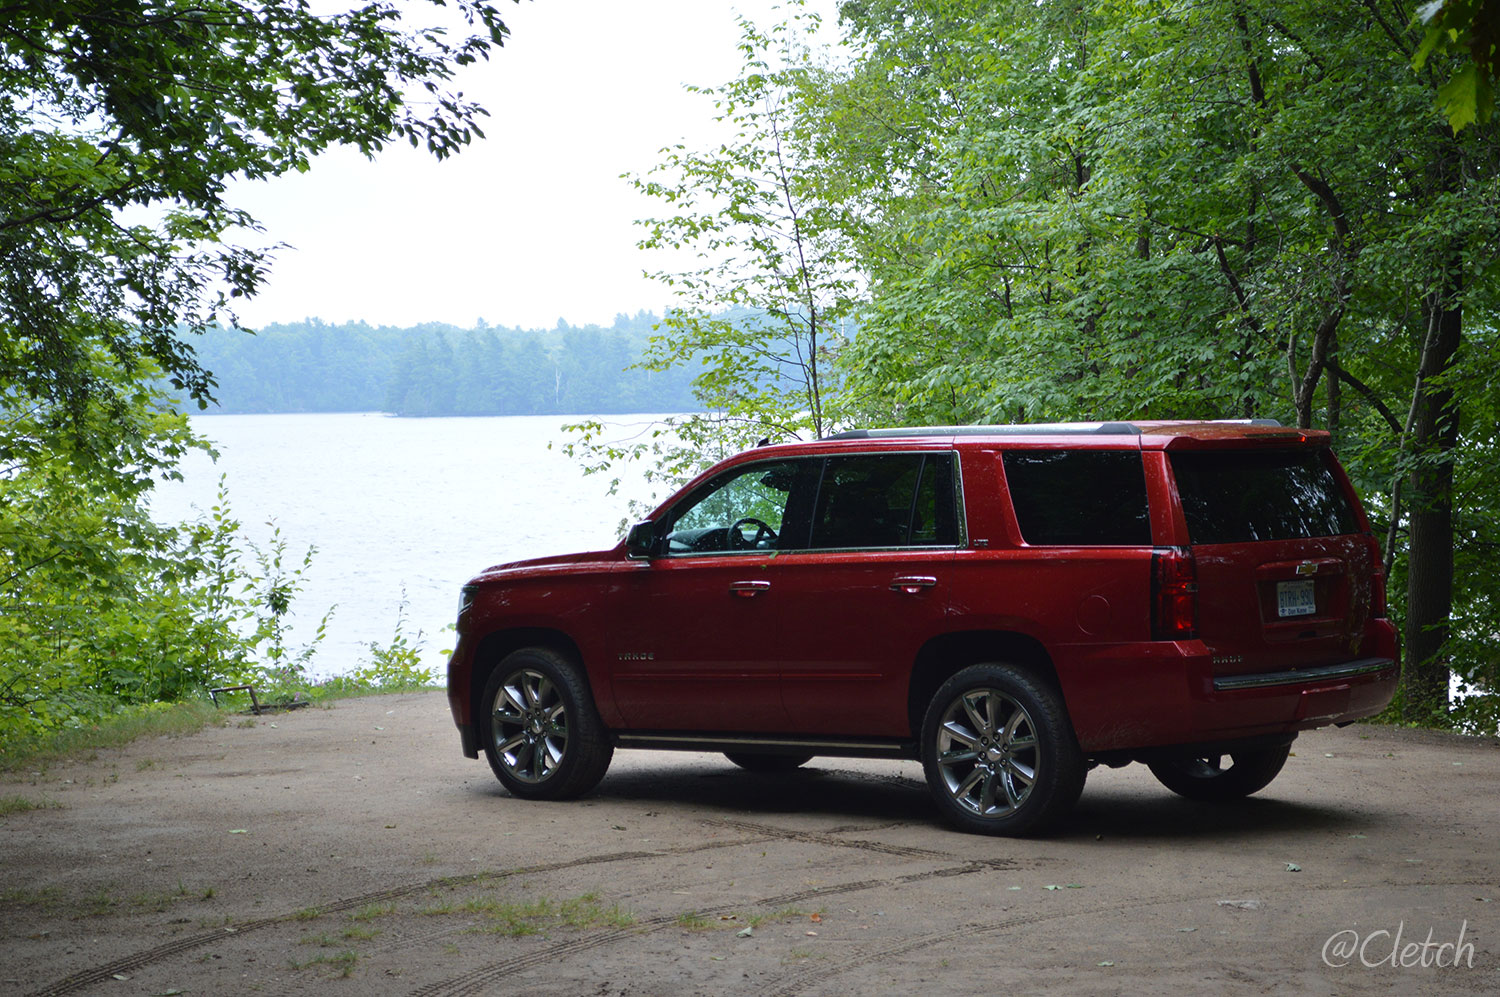 The Tahoe with Lake Opinicon in behind